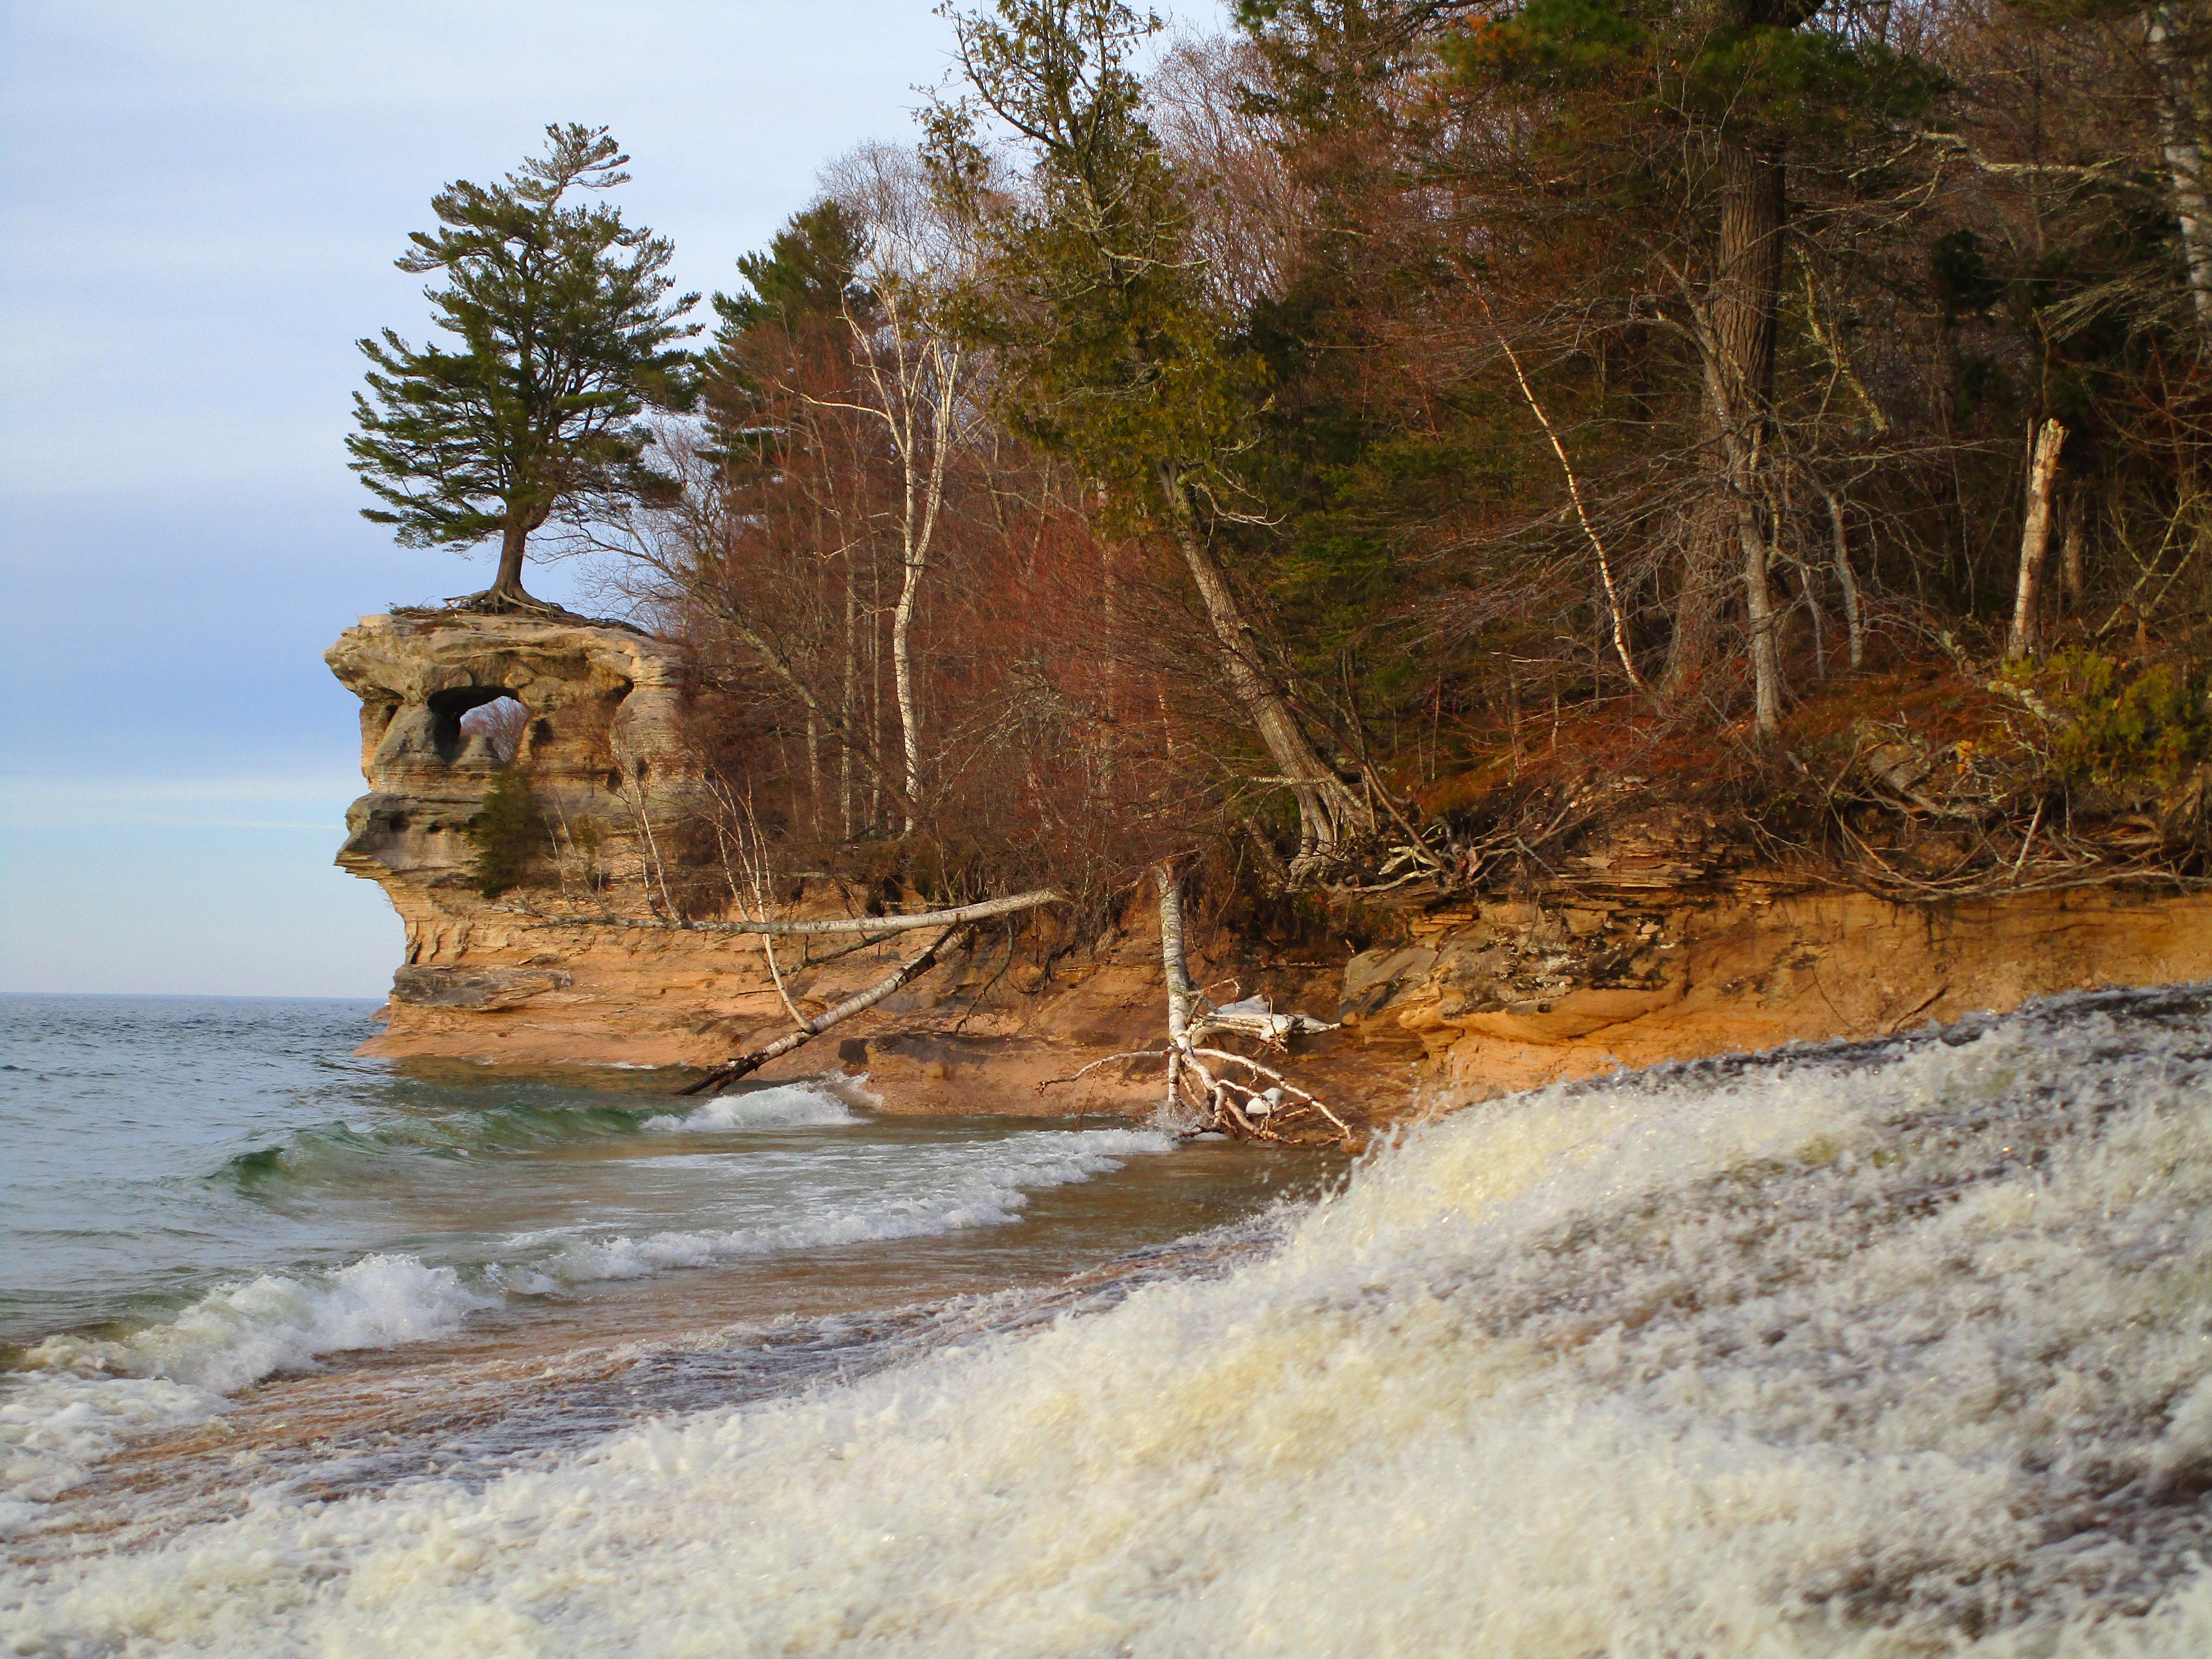 The Lakeshore Trail: Travel the Length of Pictured Rocks